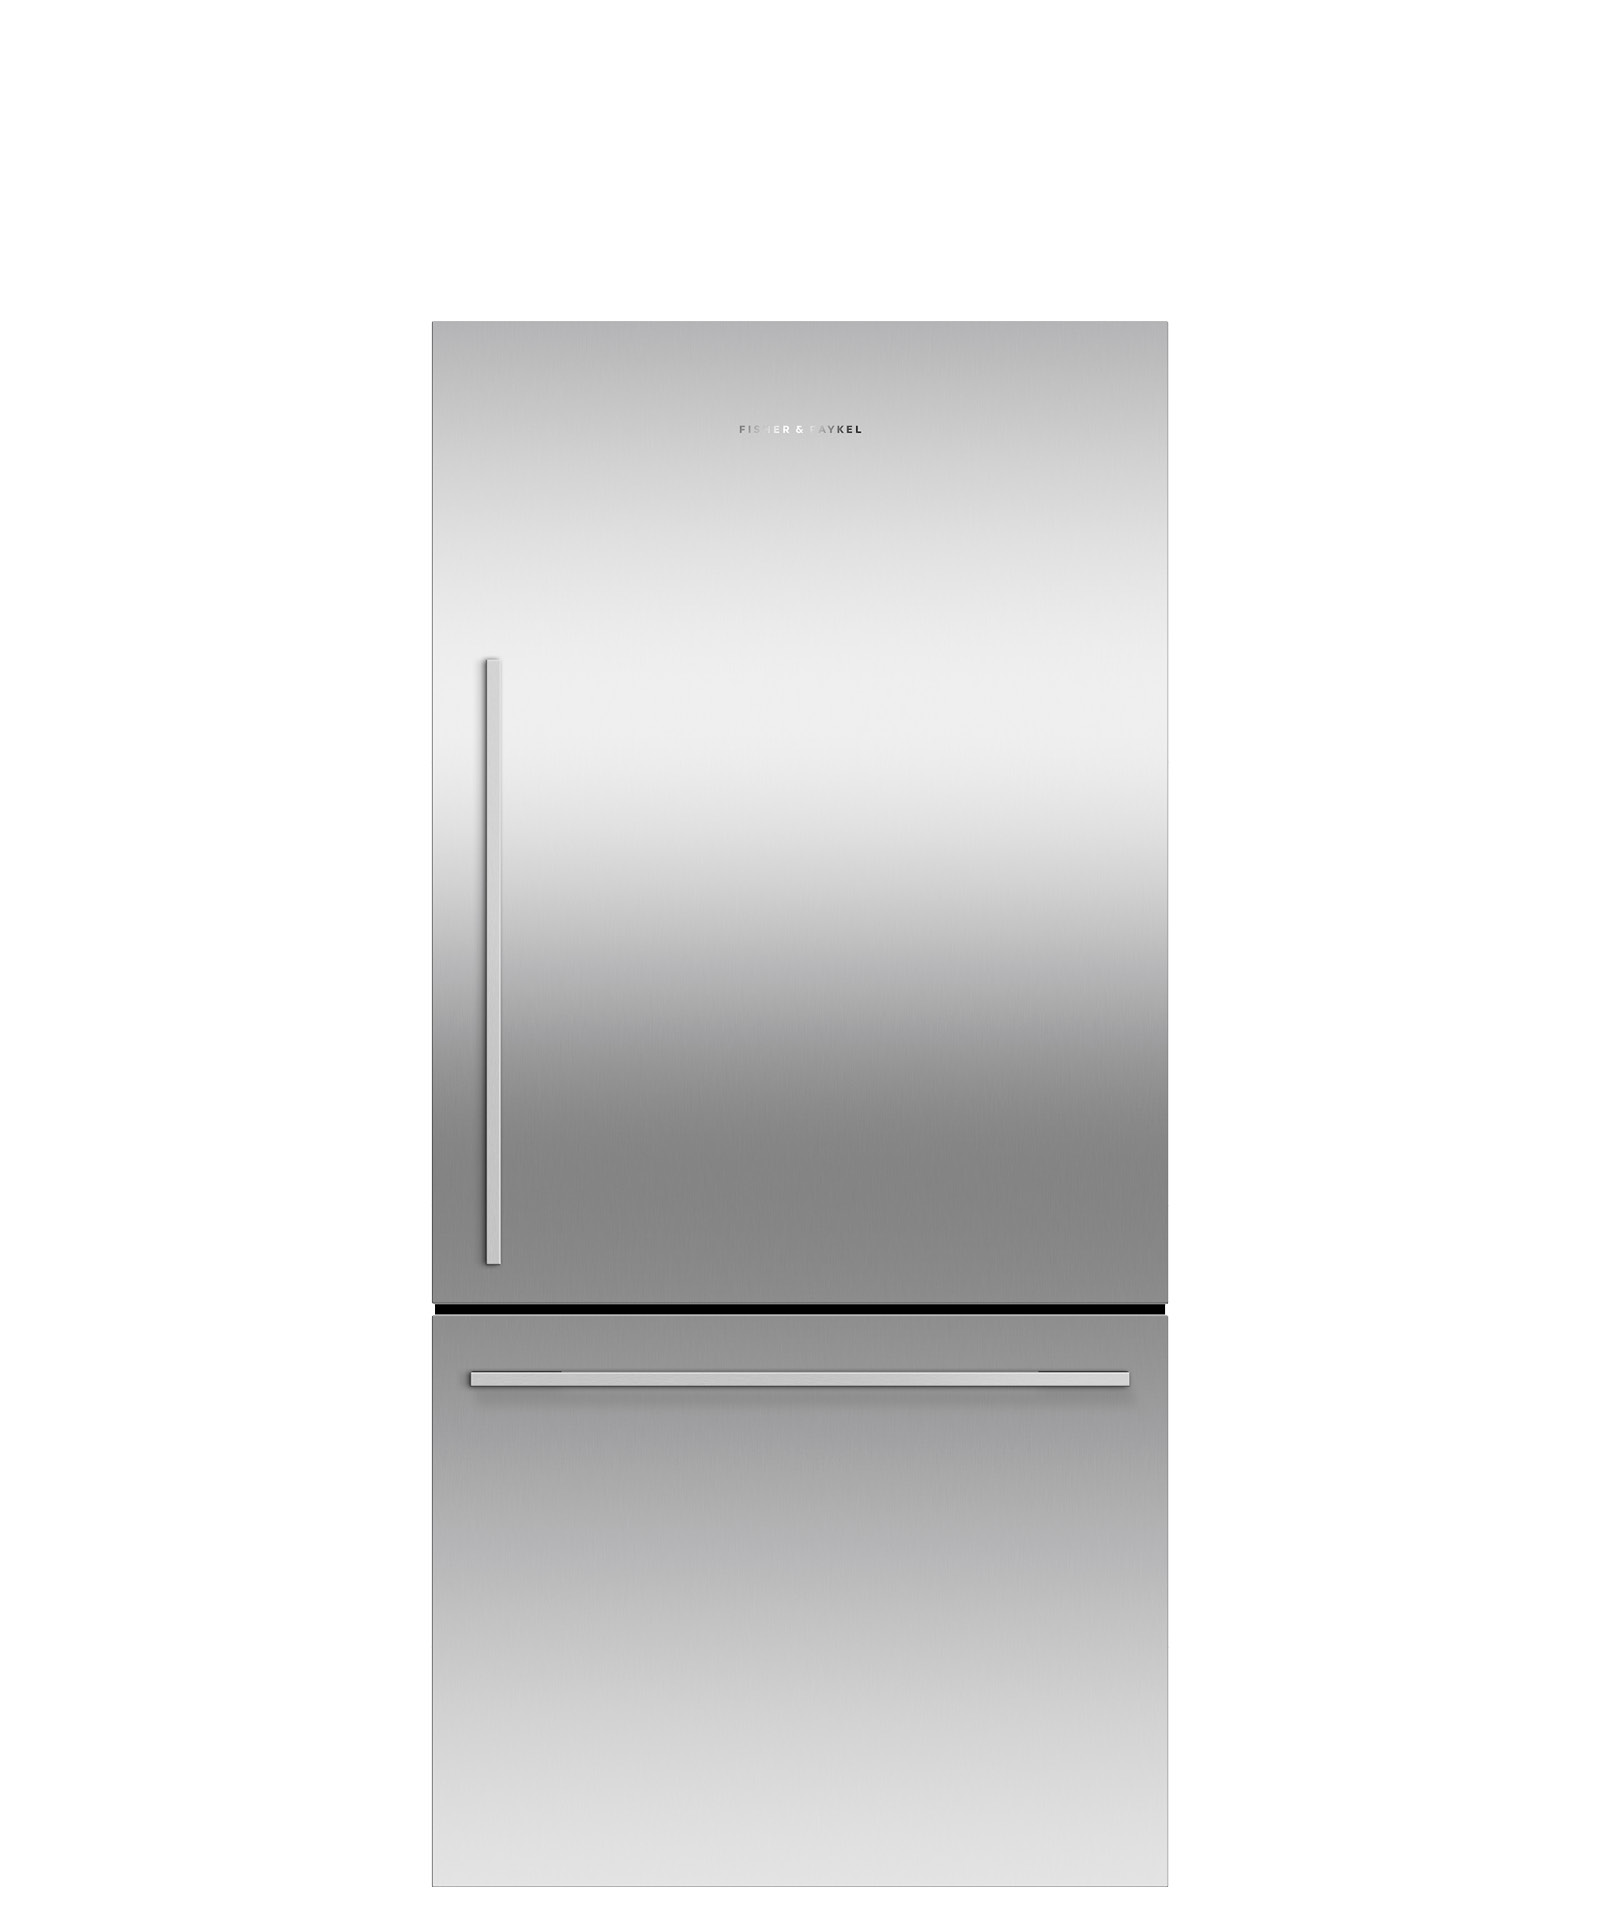 "Fisher and Paykel Freestanding Refrigerator Freezer, 31 3/32"", 17.1 cu ft, Ice only"